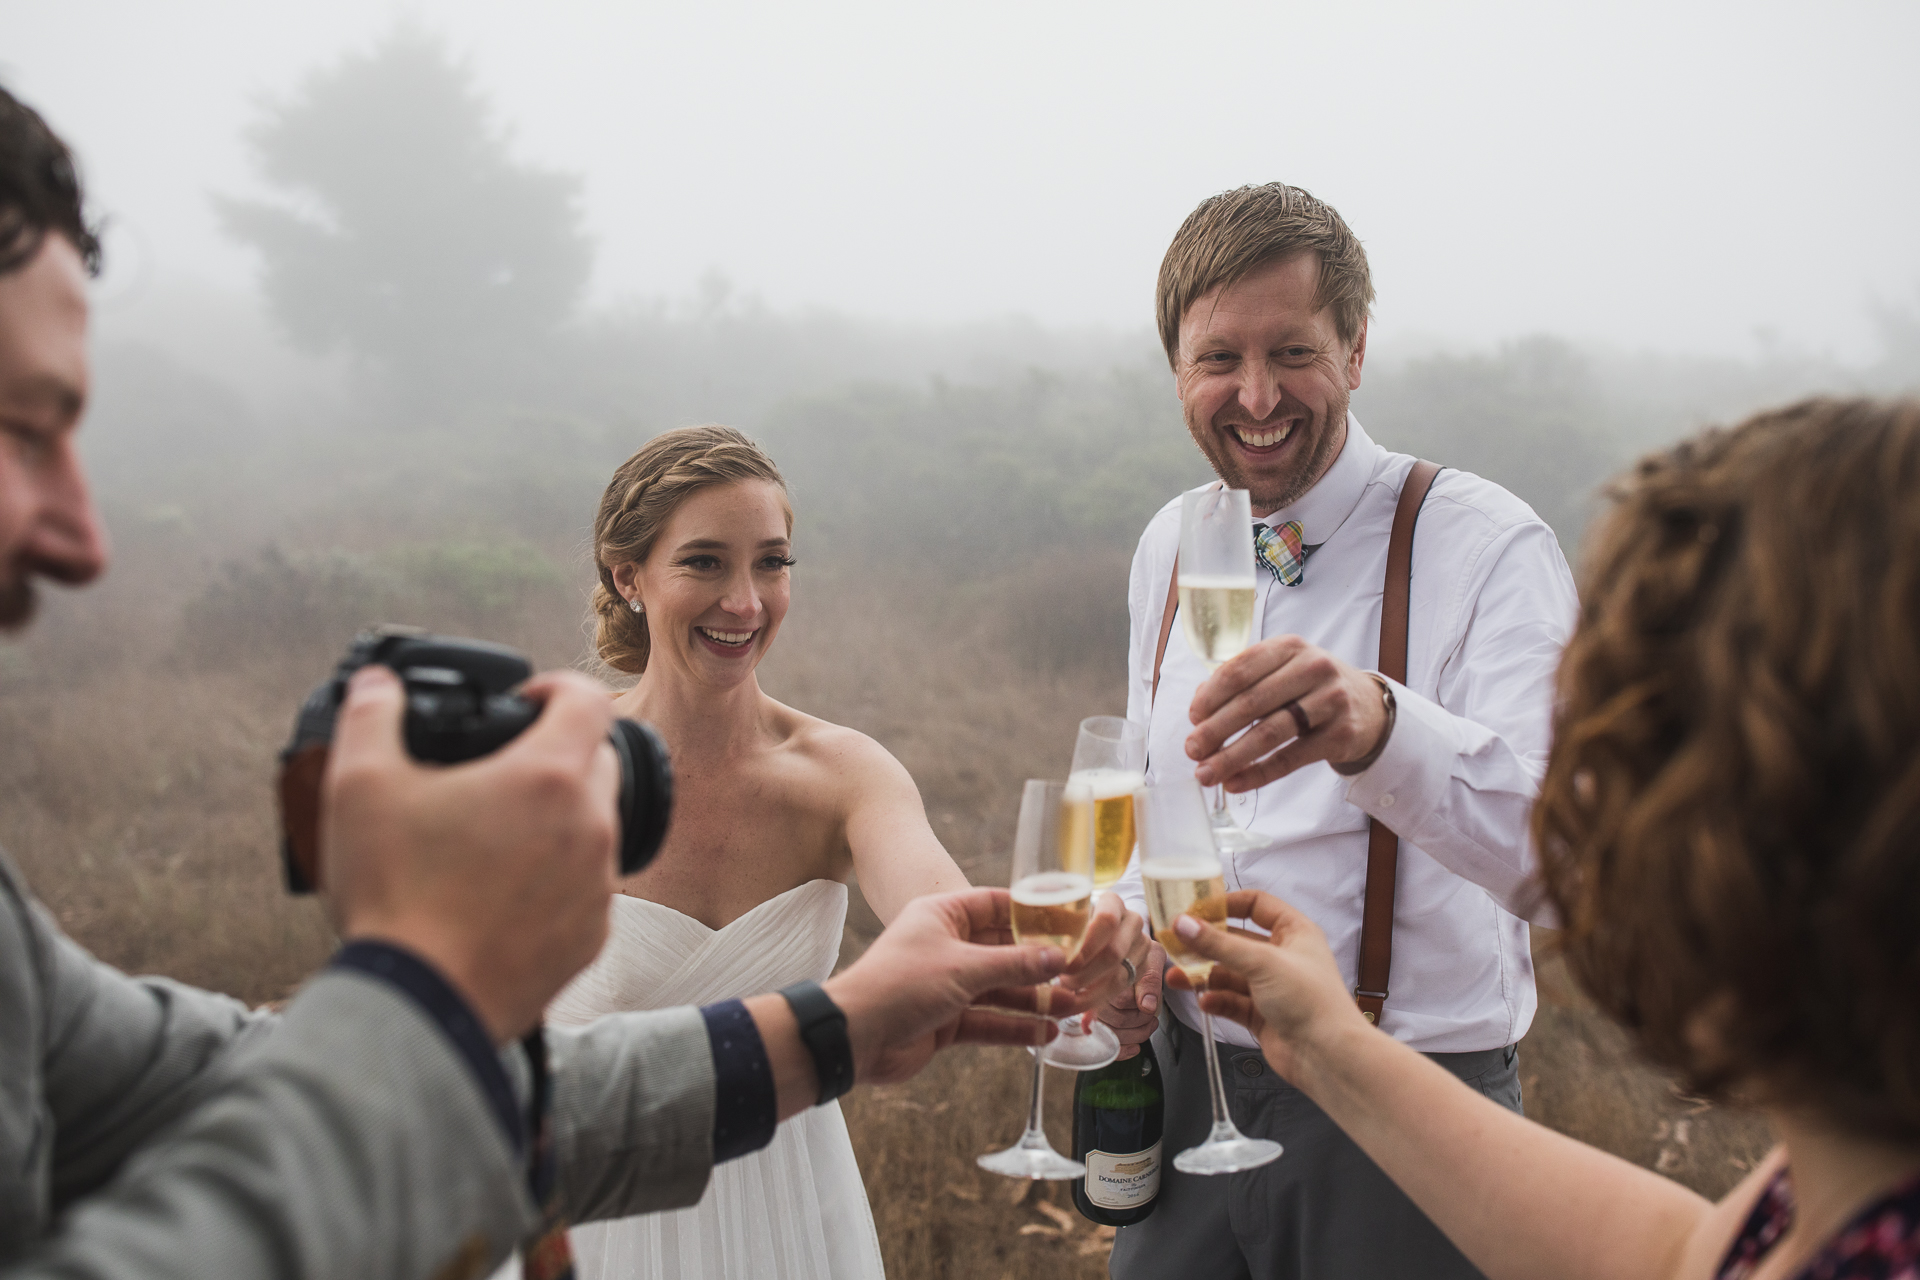 Magical Fog Redwood Forest Wedding Photography in CA | Toasting drinks from a portable table underneath a massive Live Oak Tree